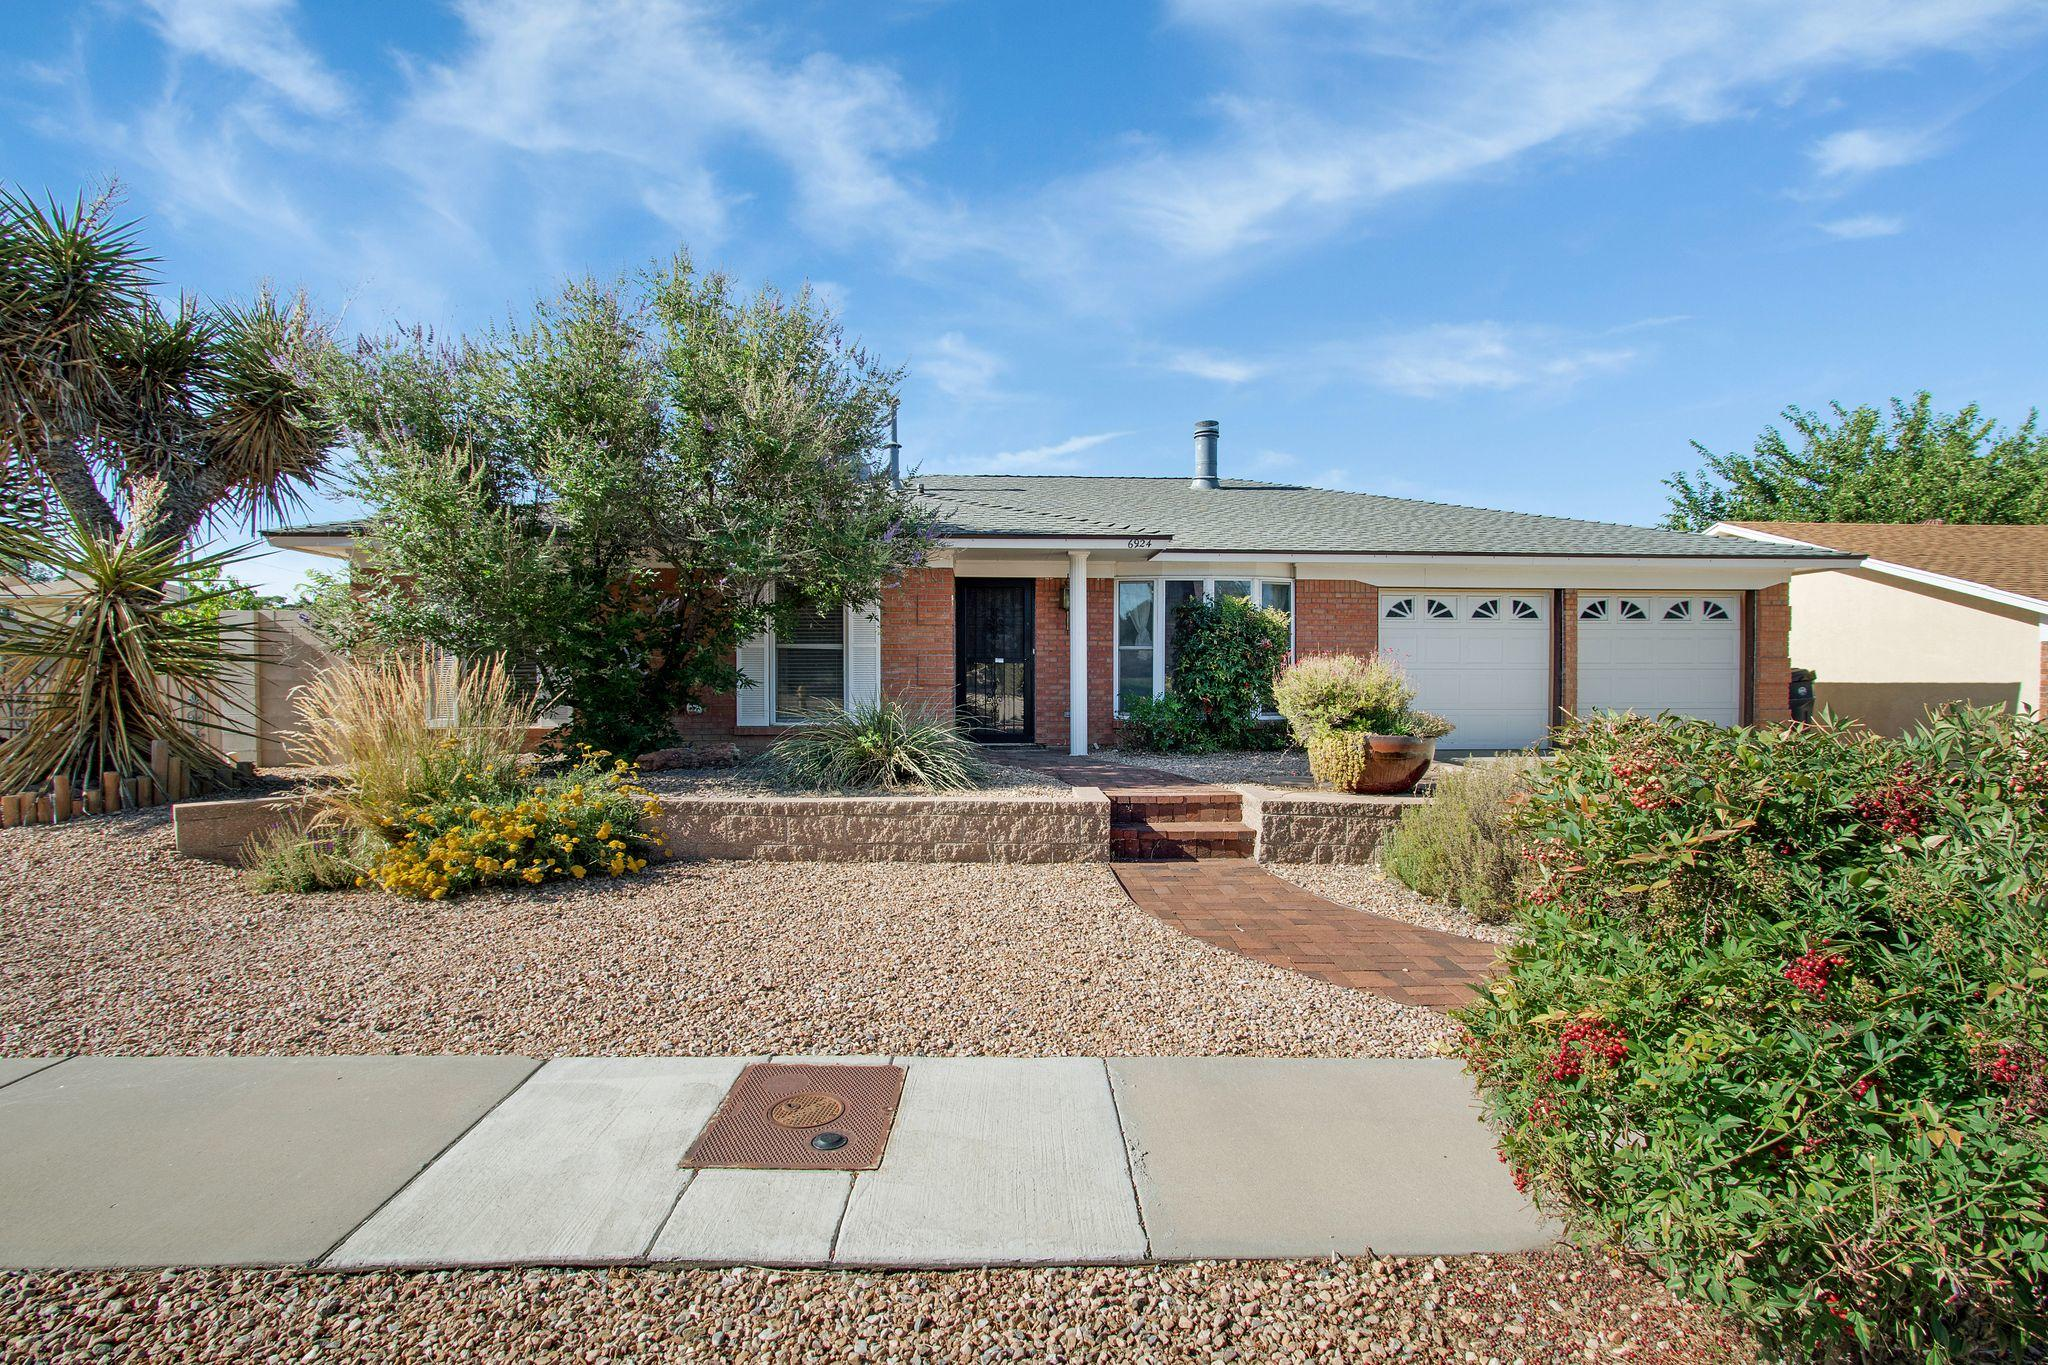 6924 AVENIDA LA COSTA NE Property Photo - Albuquerque, NM real estate listing